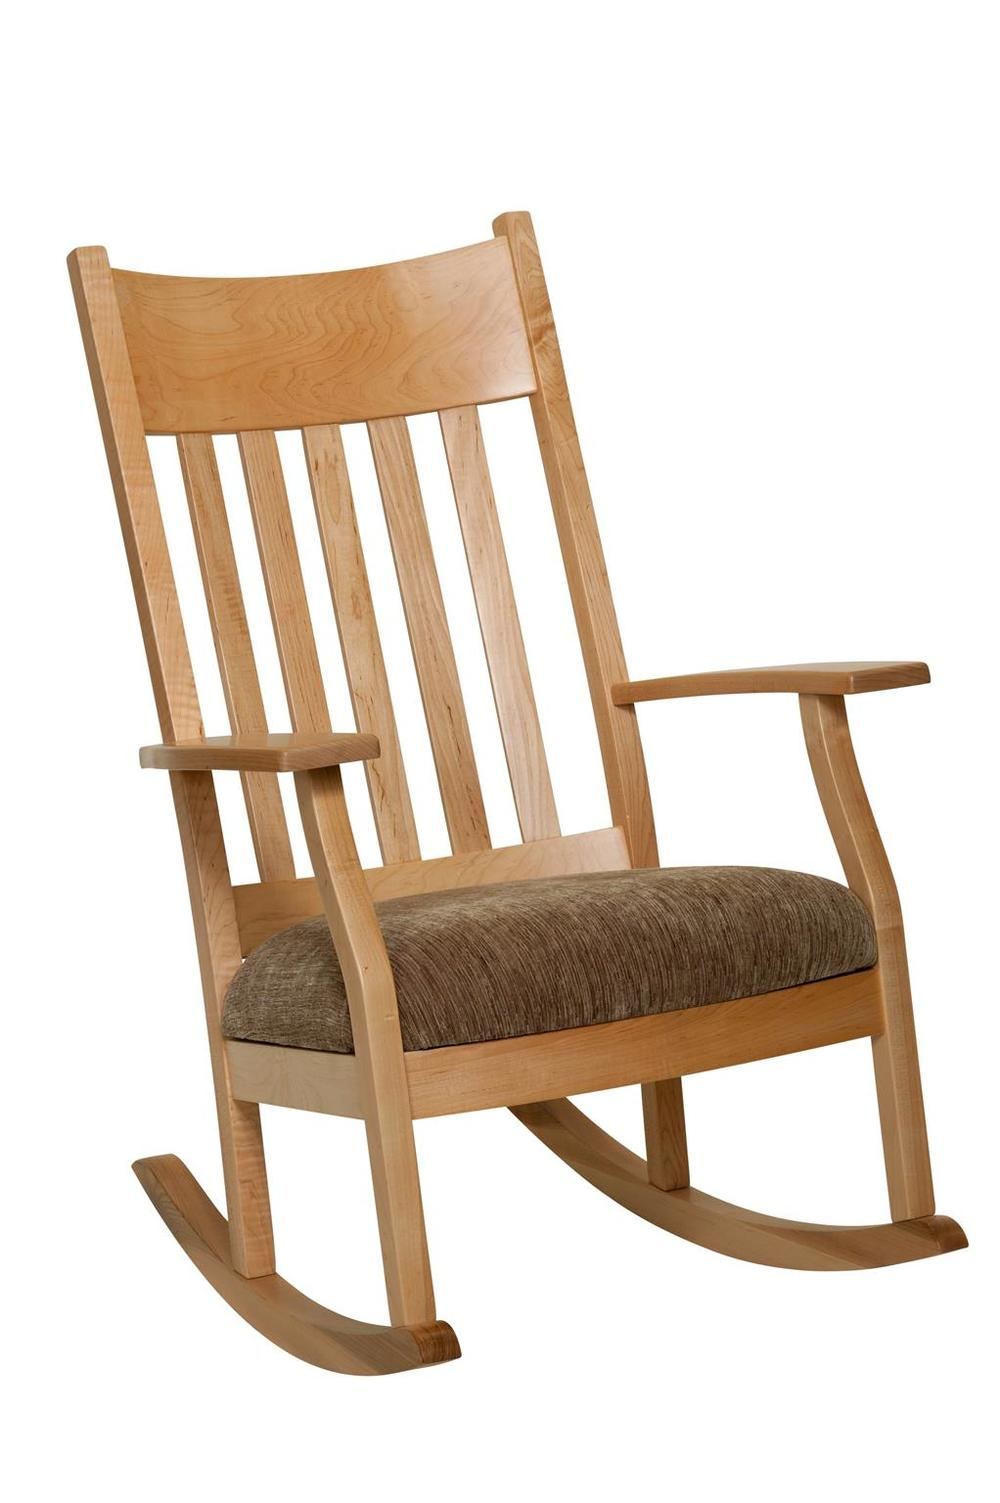 Borkholder Furniture - Rocker Seat